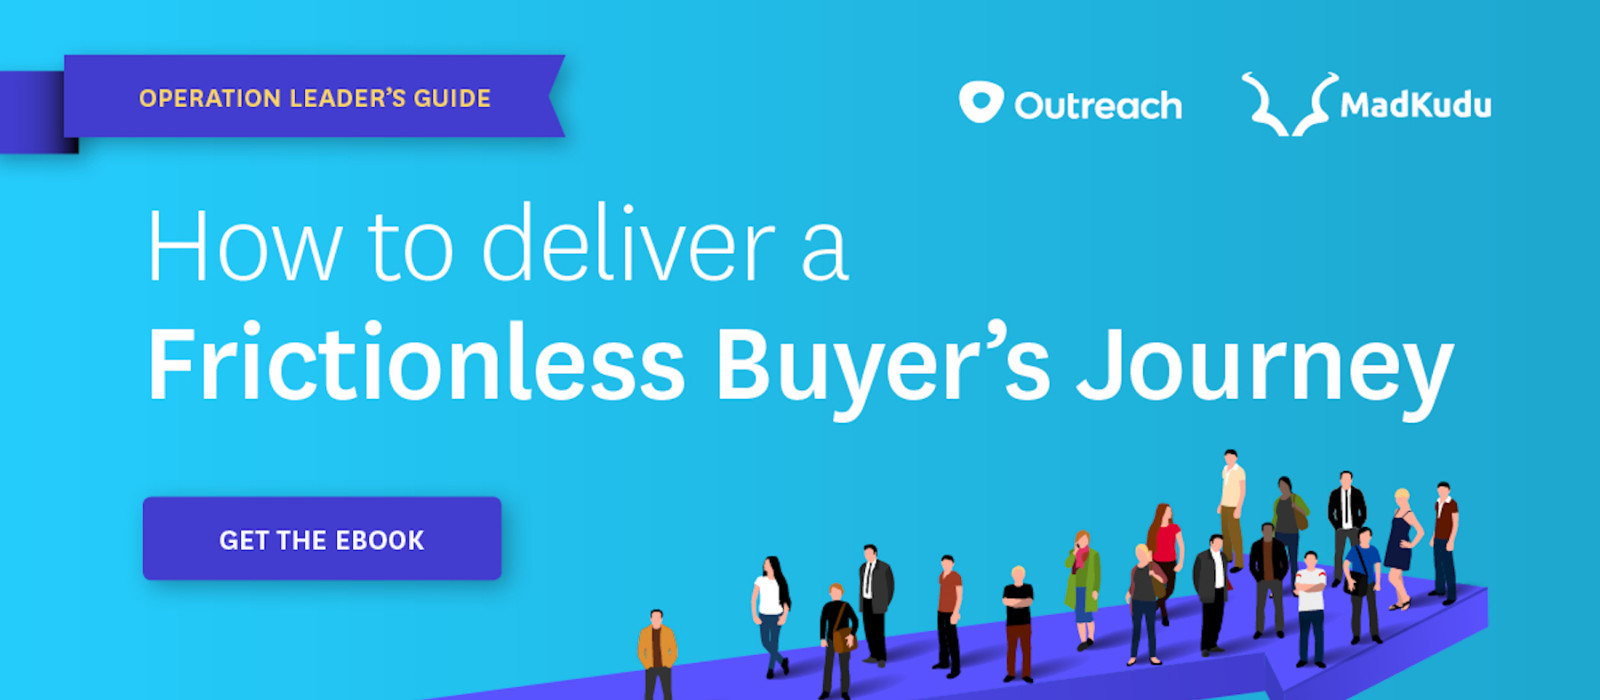 How to Deliver a Frictionless Buyer's Journey